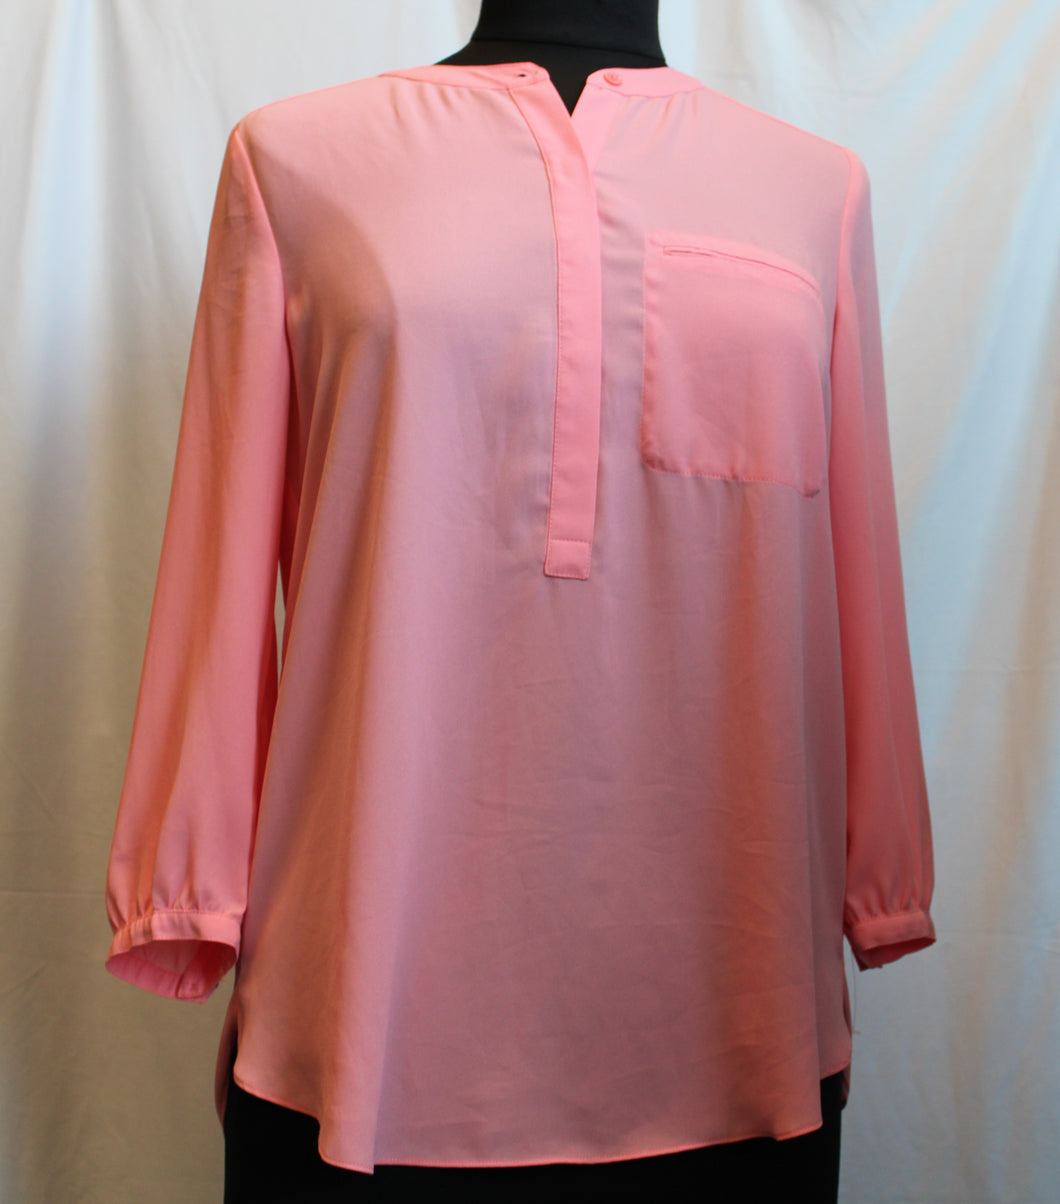 Women's 3/4 Sleeve Blouse                     S                                                 4/14A